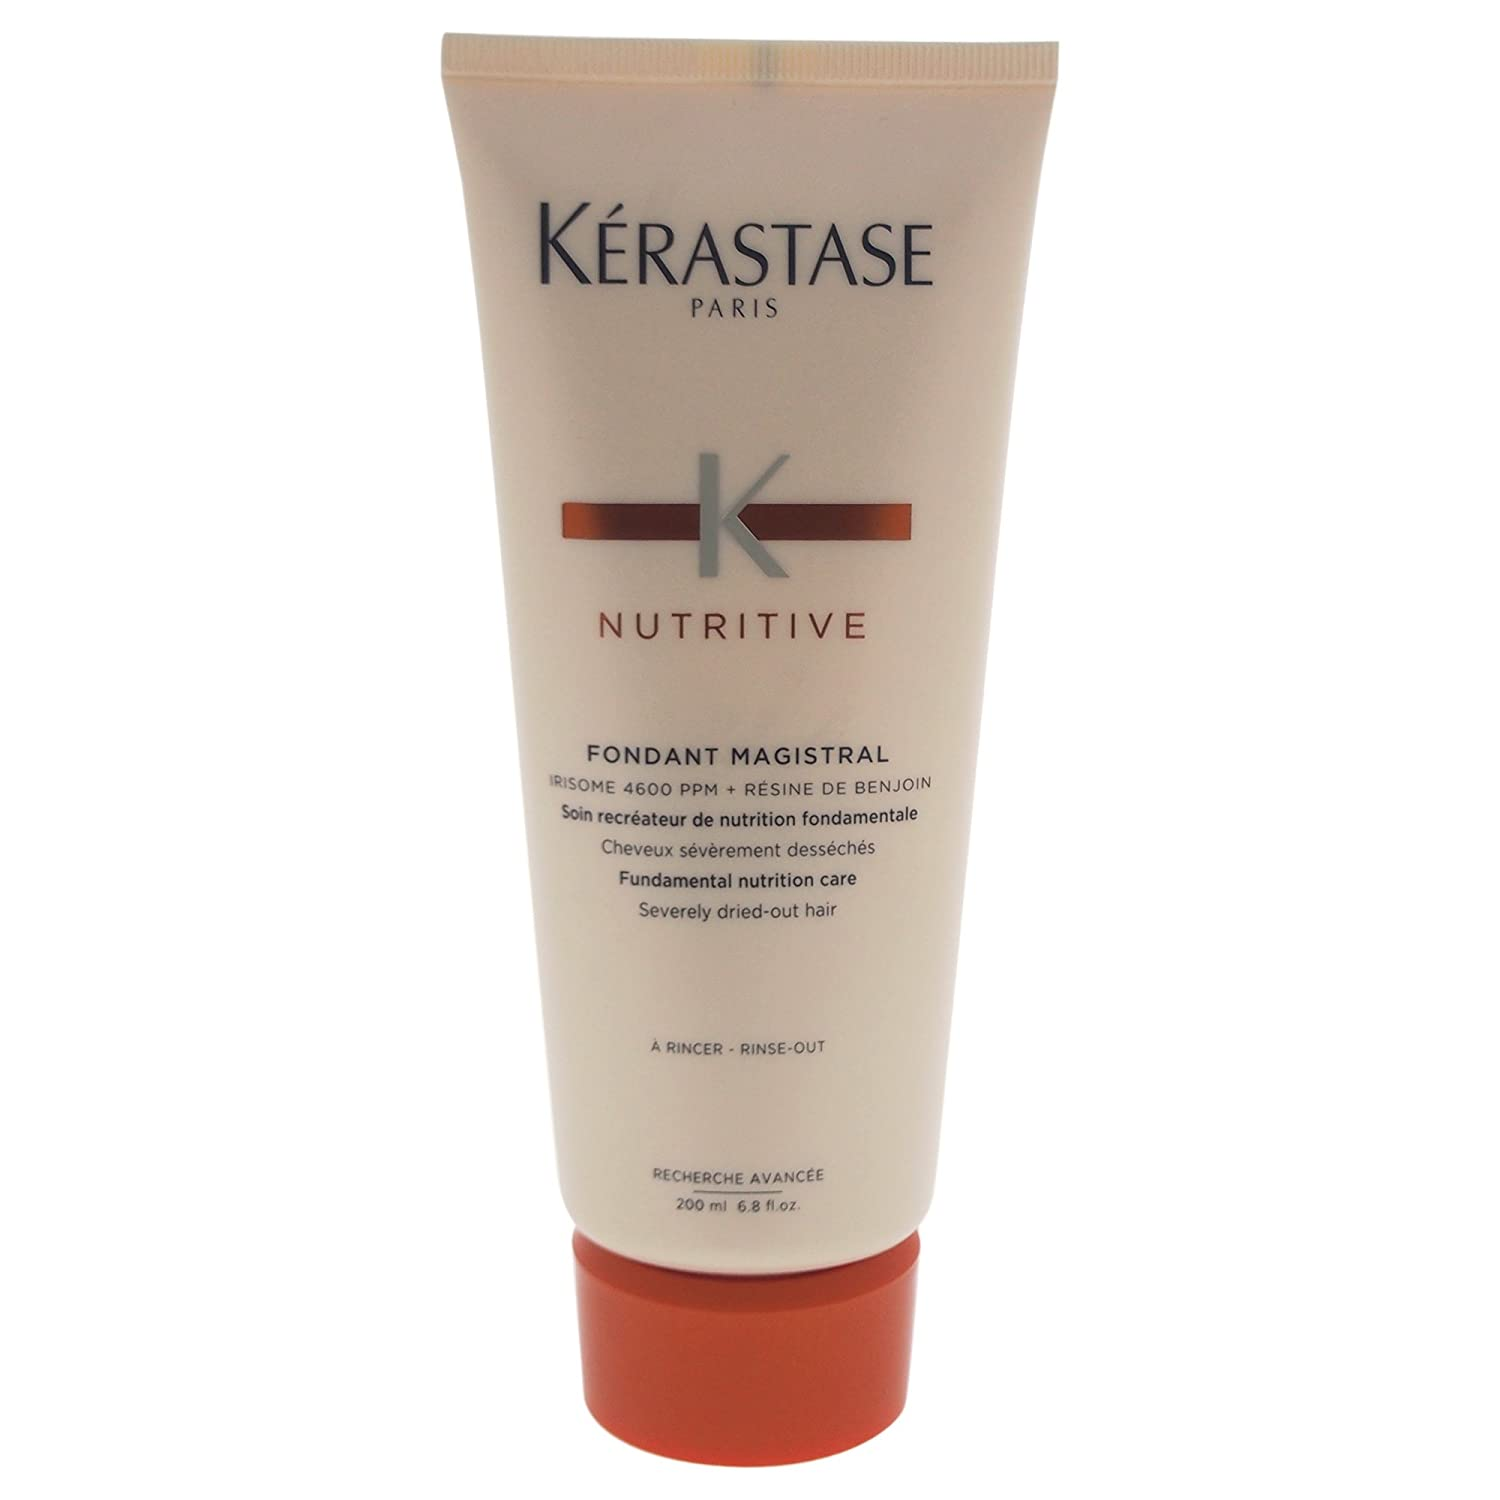 Kerastase Nutritive Mastery Fondant Hair Cream 200 ml 3474636382446